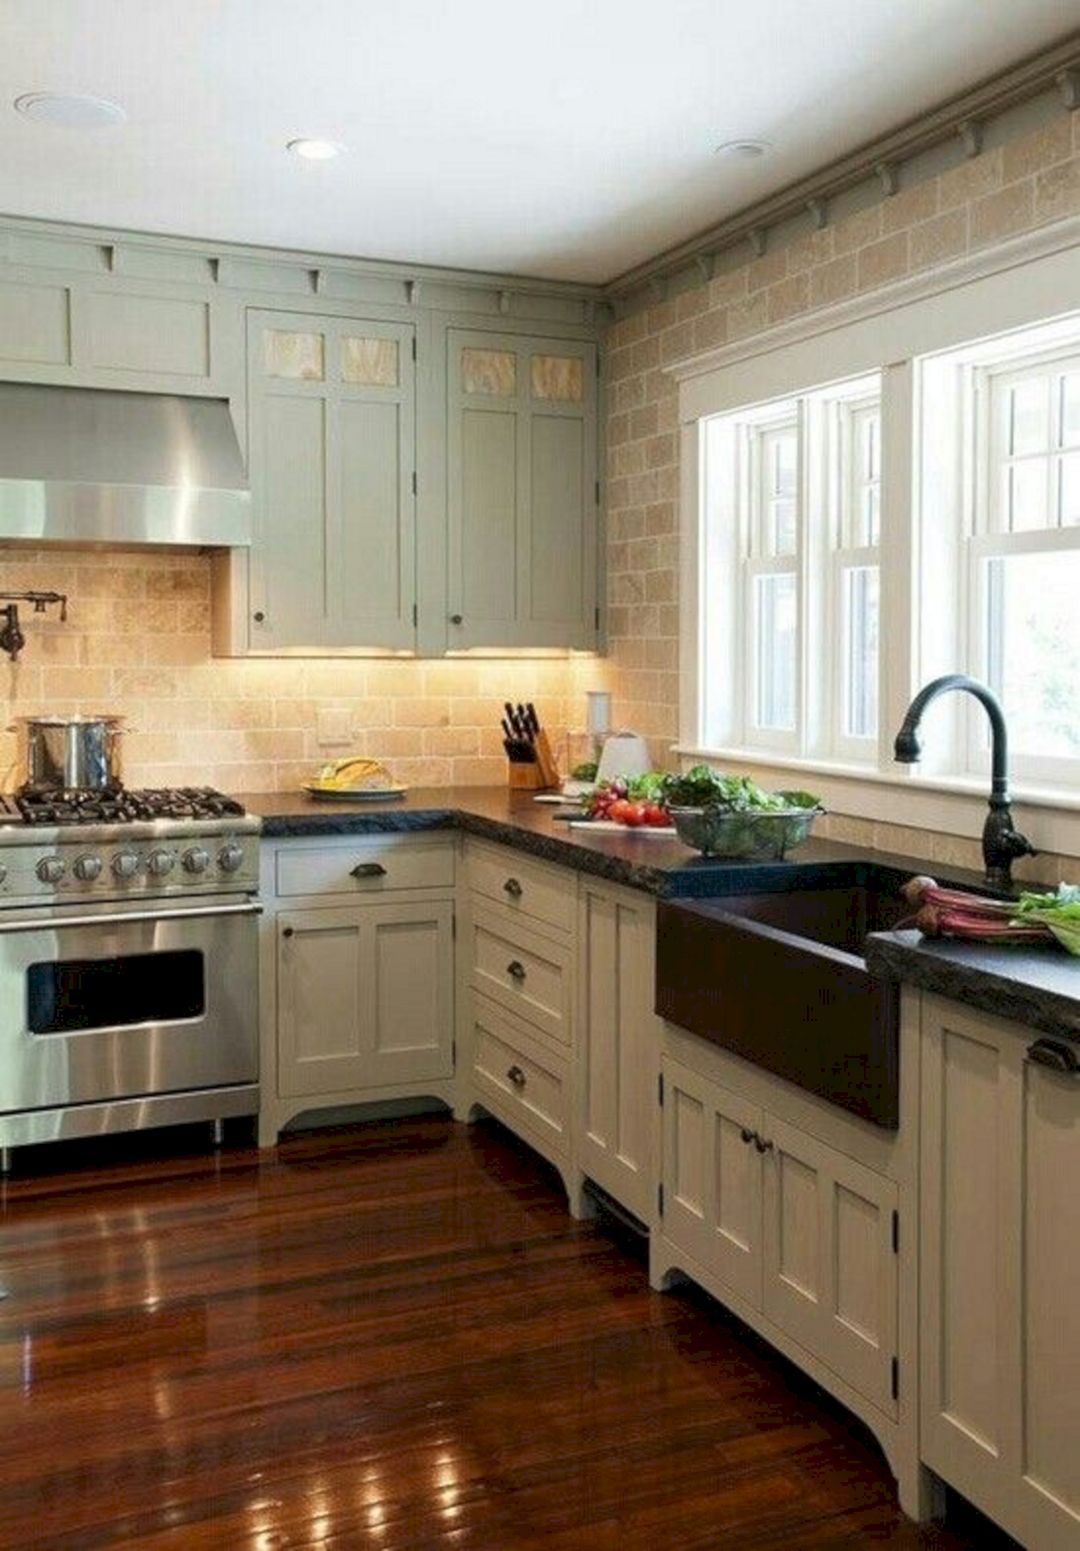 45 extraordinary farmhouse kitchen color design ideas kitchen room farmhouse kitchen decor on kitchen cabinets farmhouse style id=81517